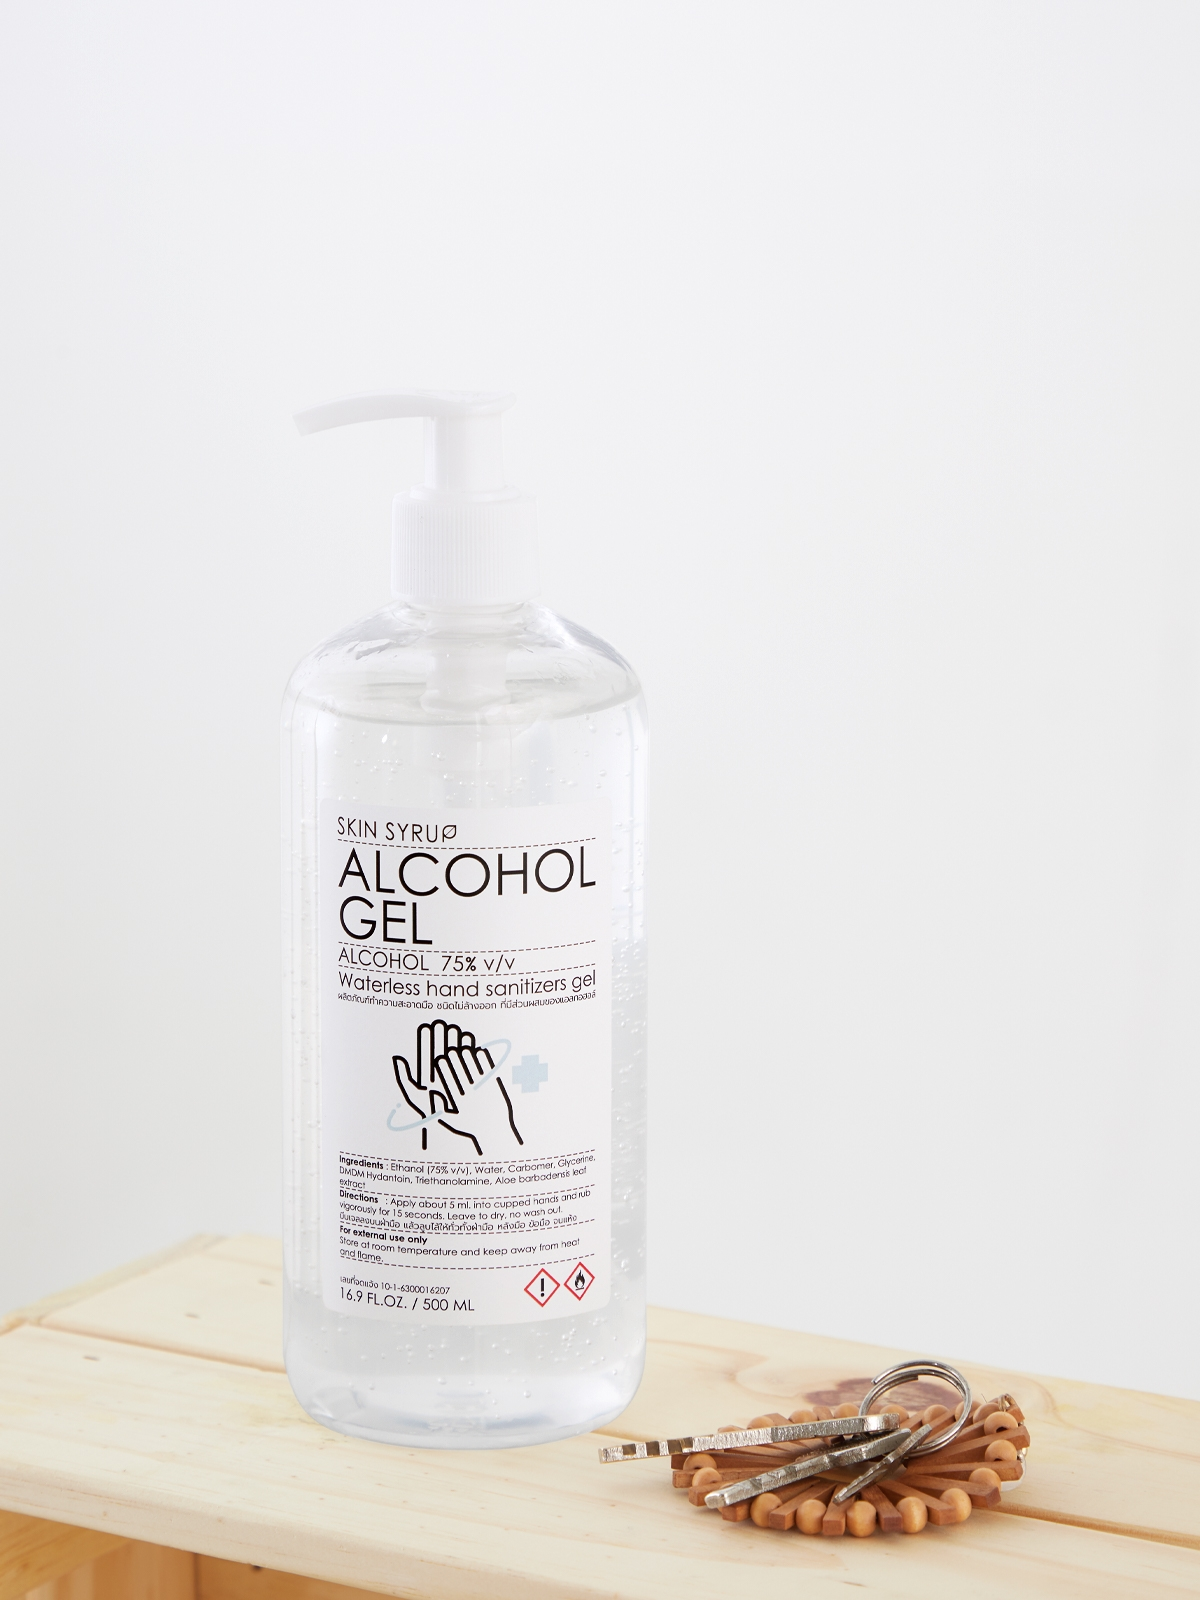 SKIN SYRUP Alcohol Gel 500 ml Alcohol